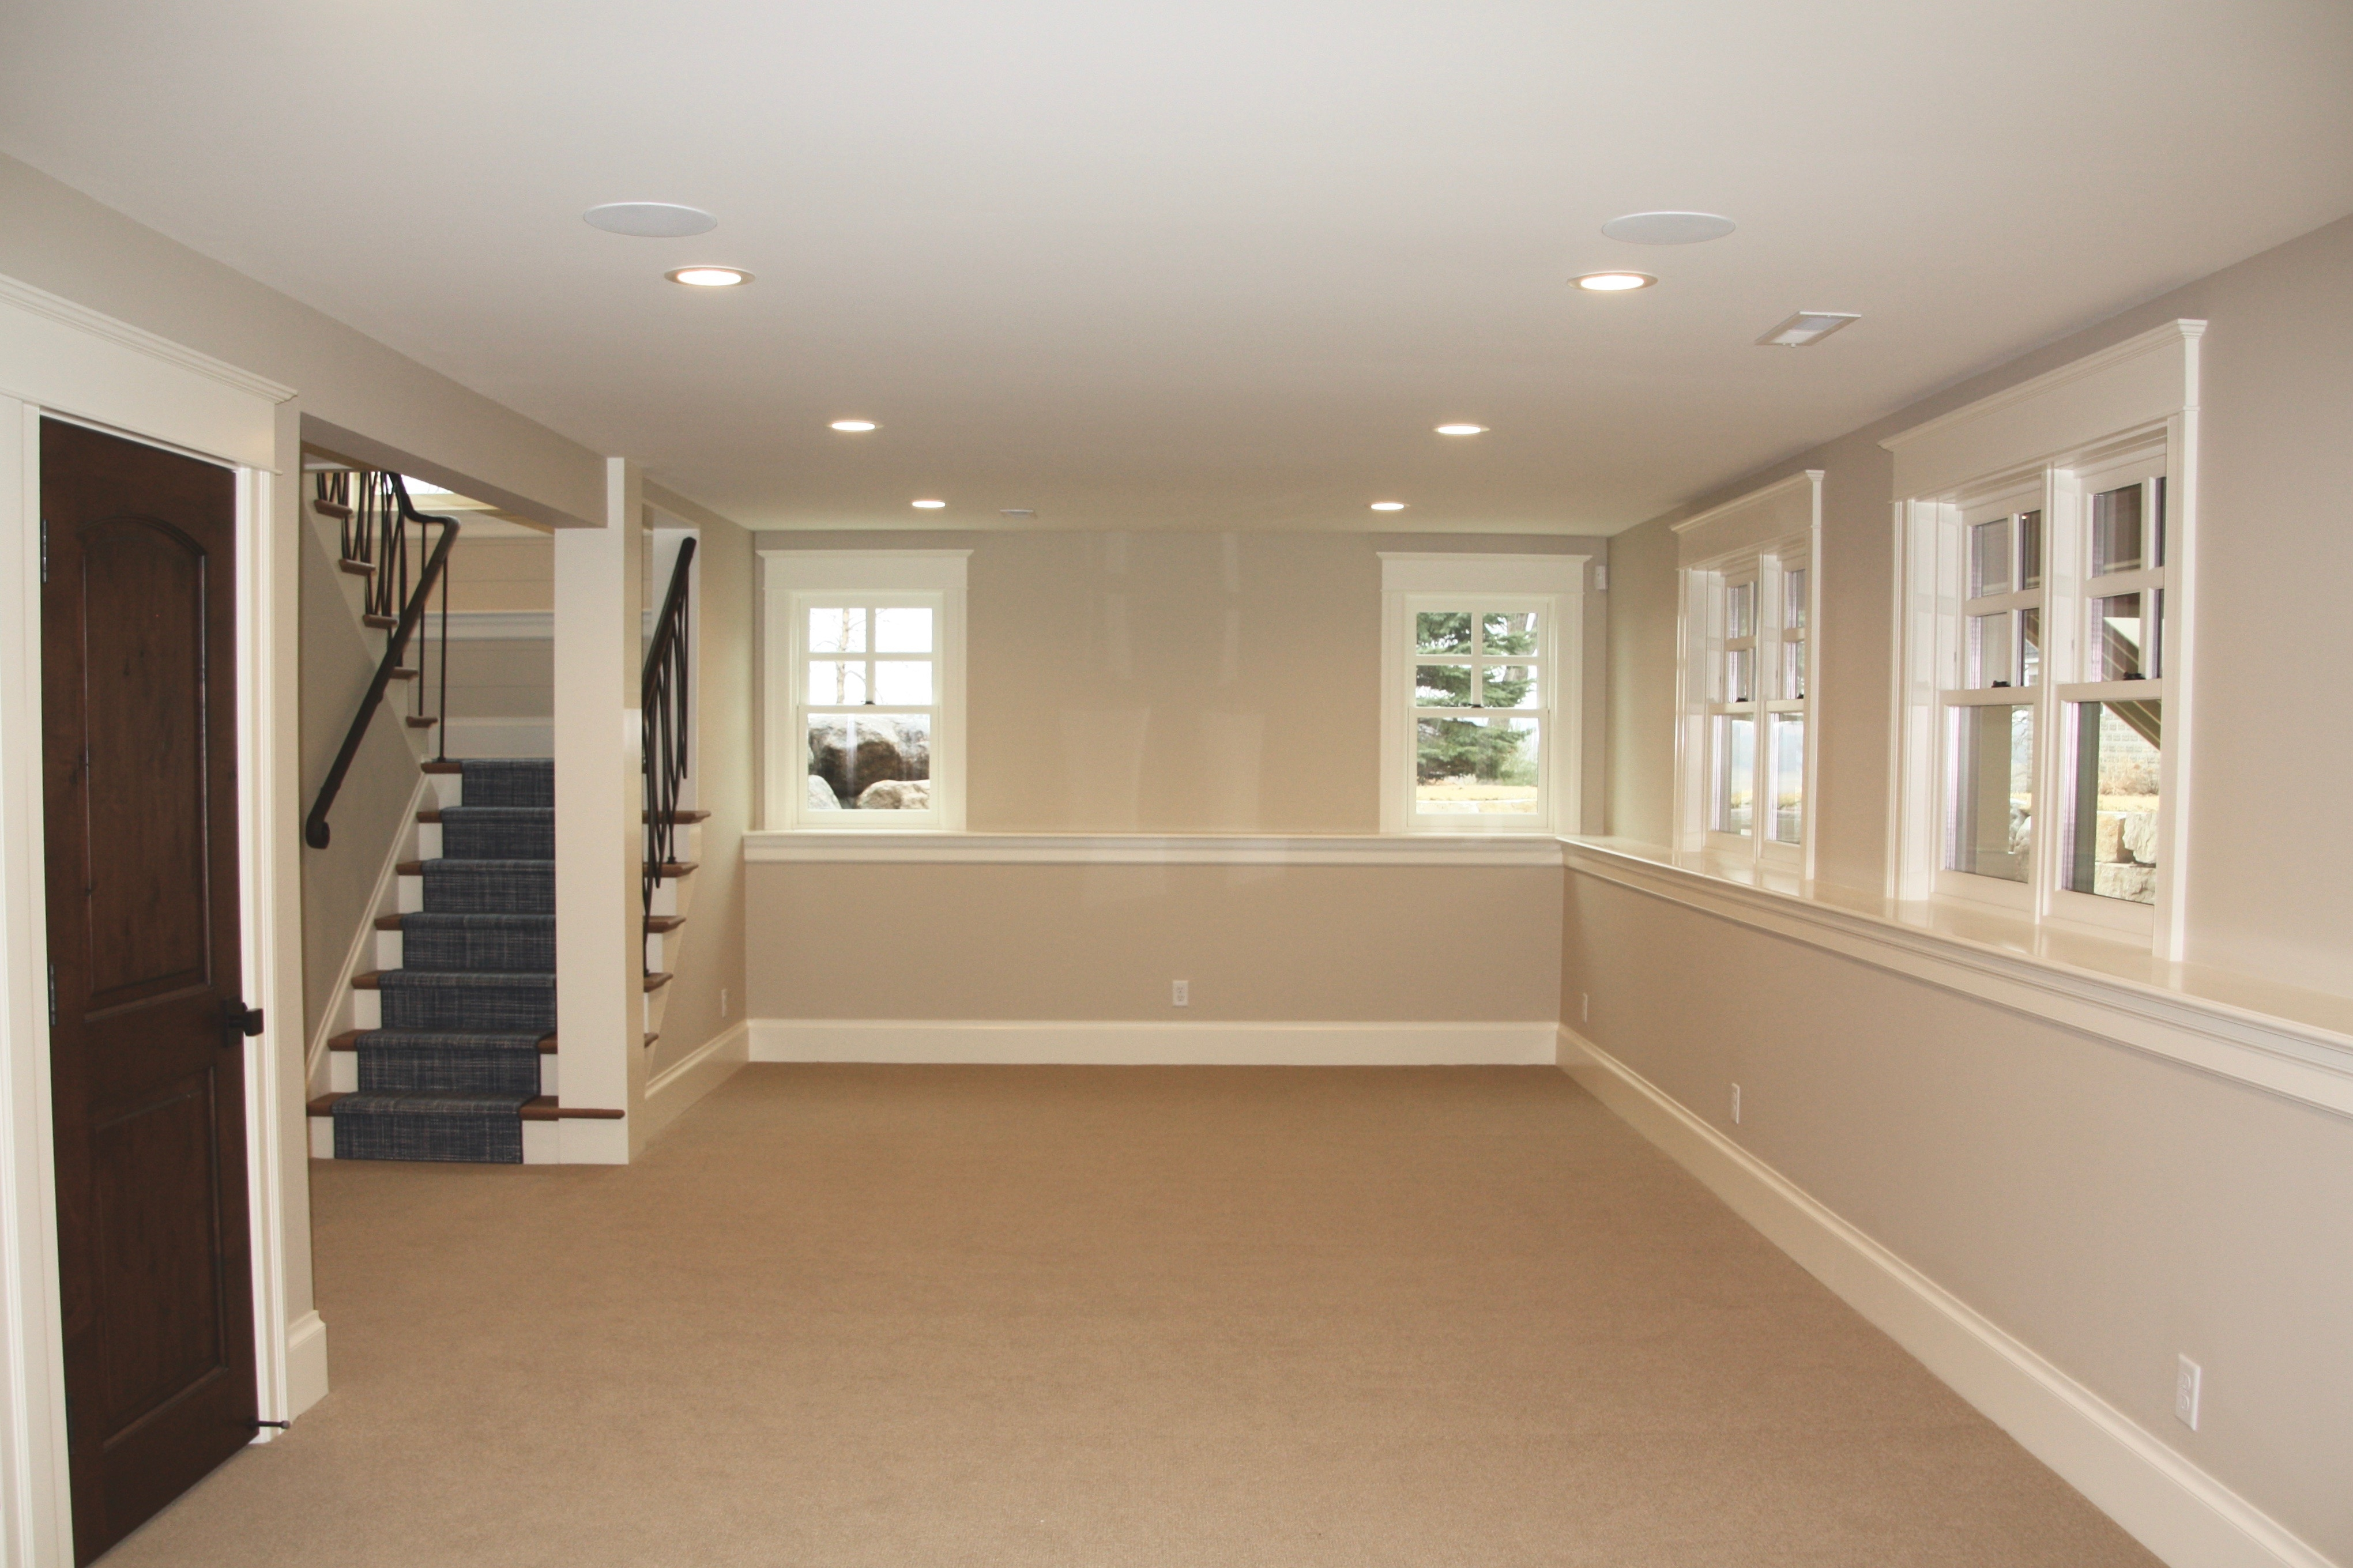 Twin Cities Basement Remodeling